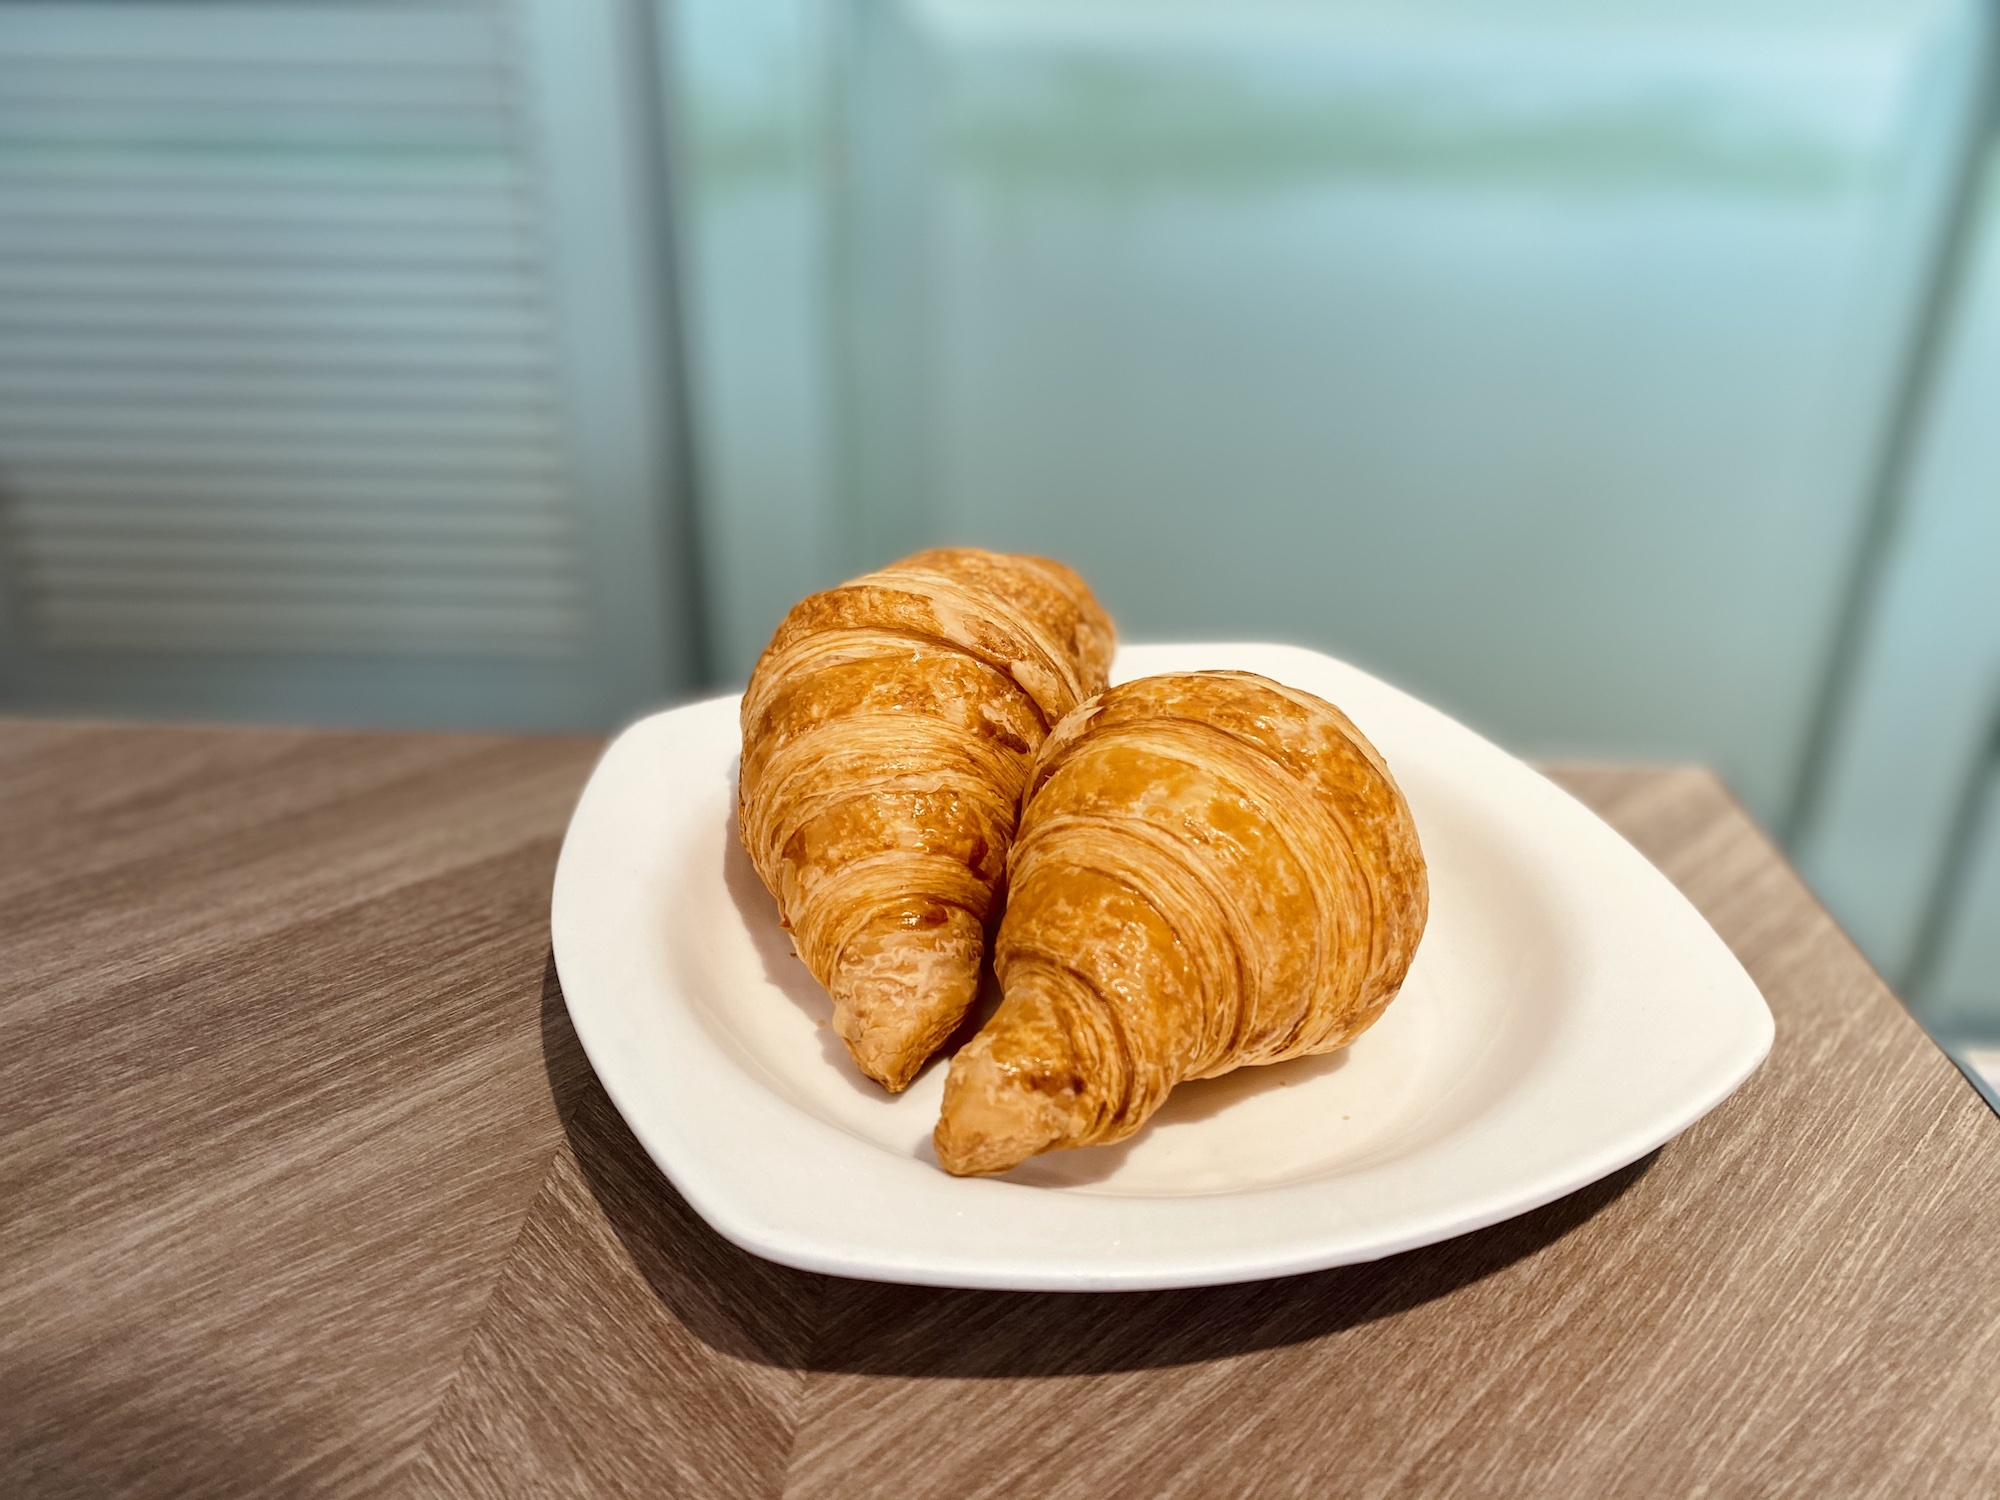 jam and butter coloane croissant macau